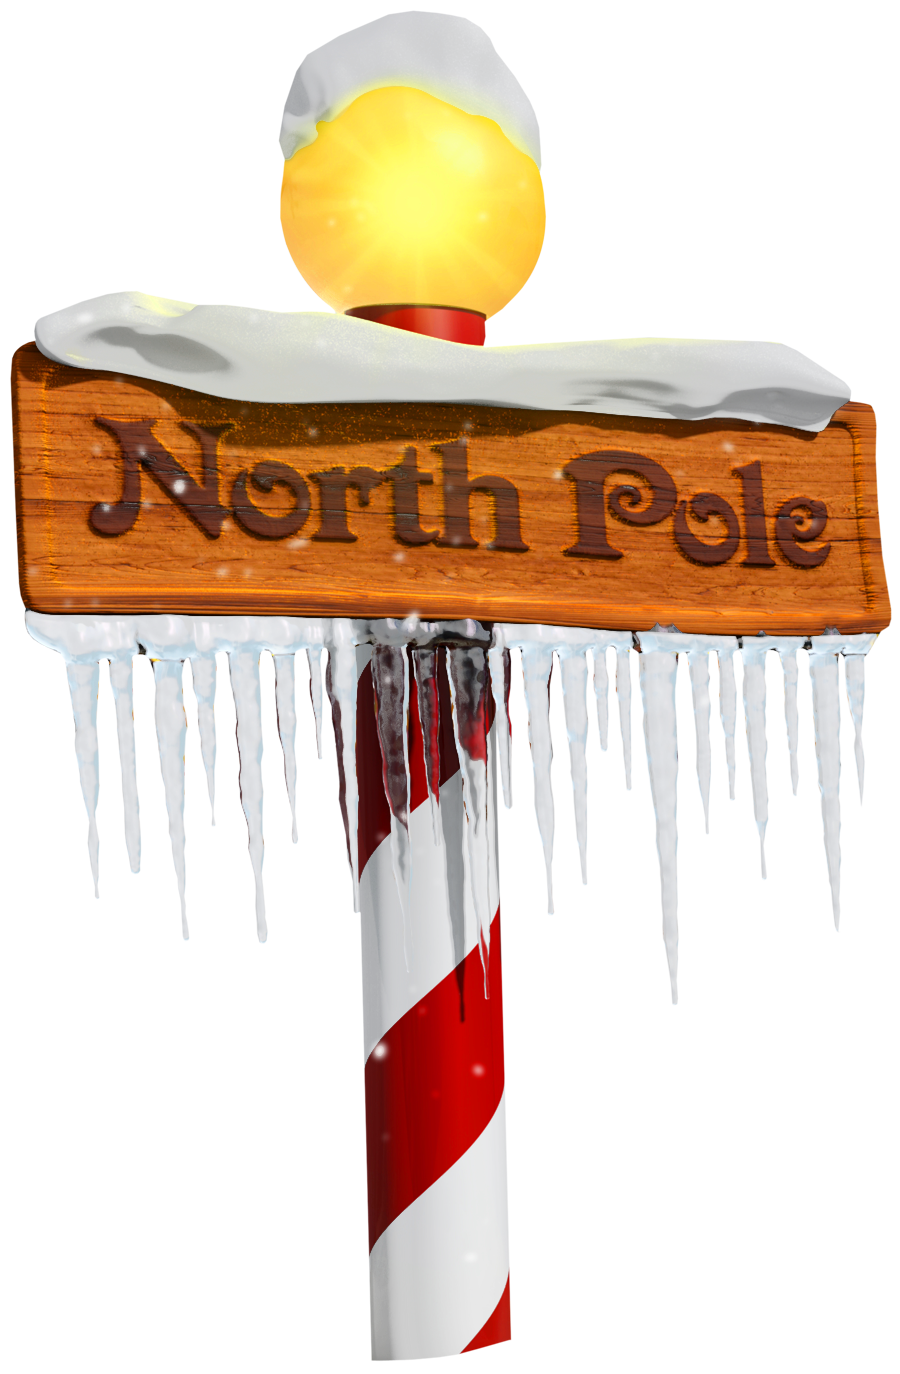 clip free download North pole clipart. Sign png gallery yopriceville